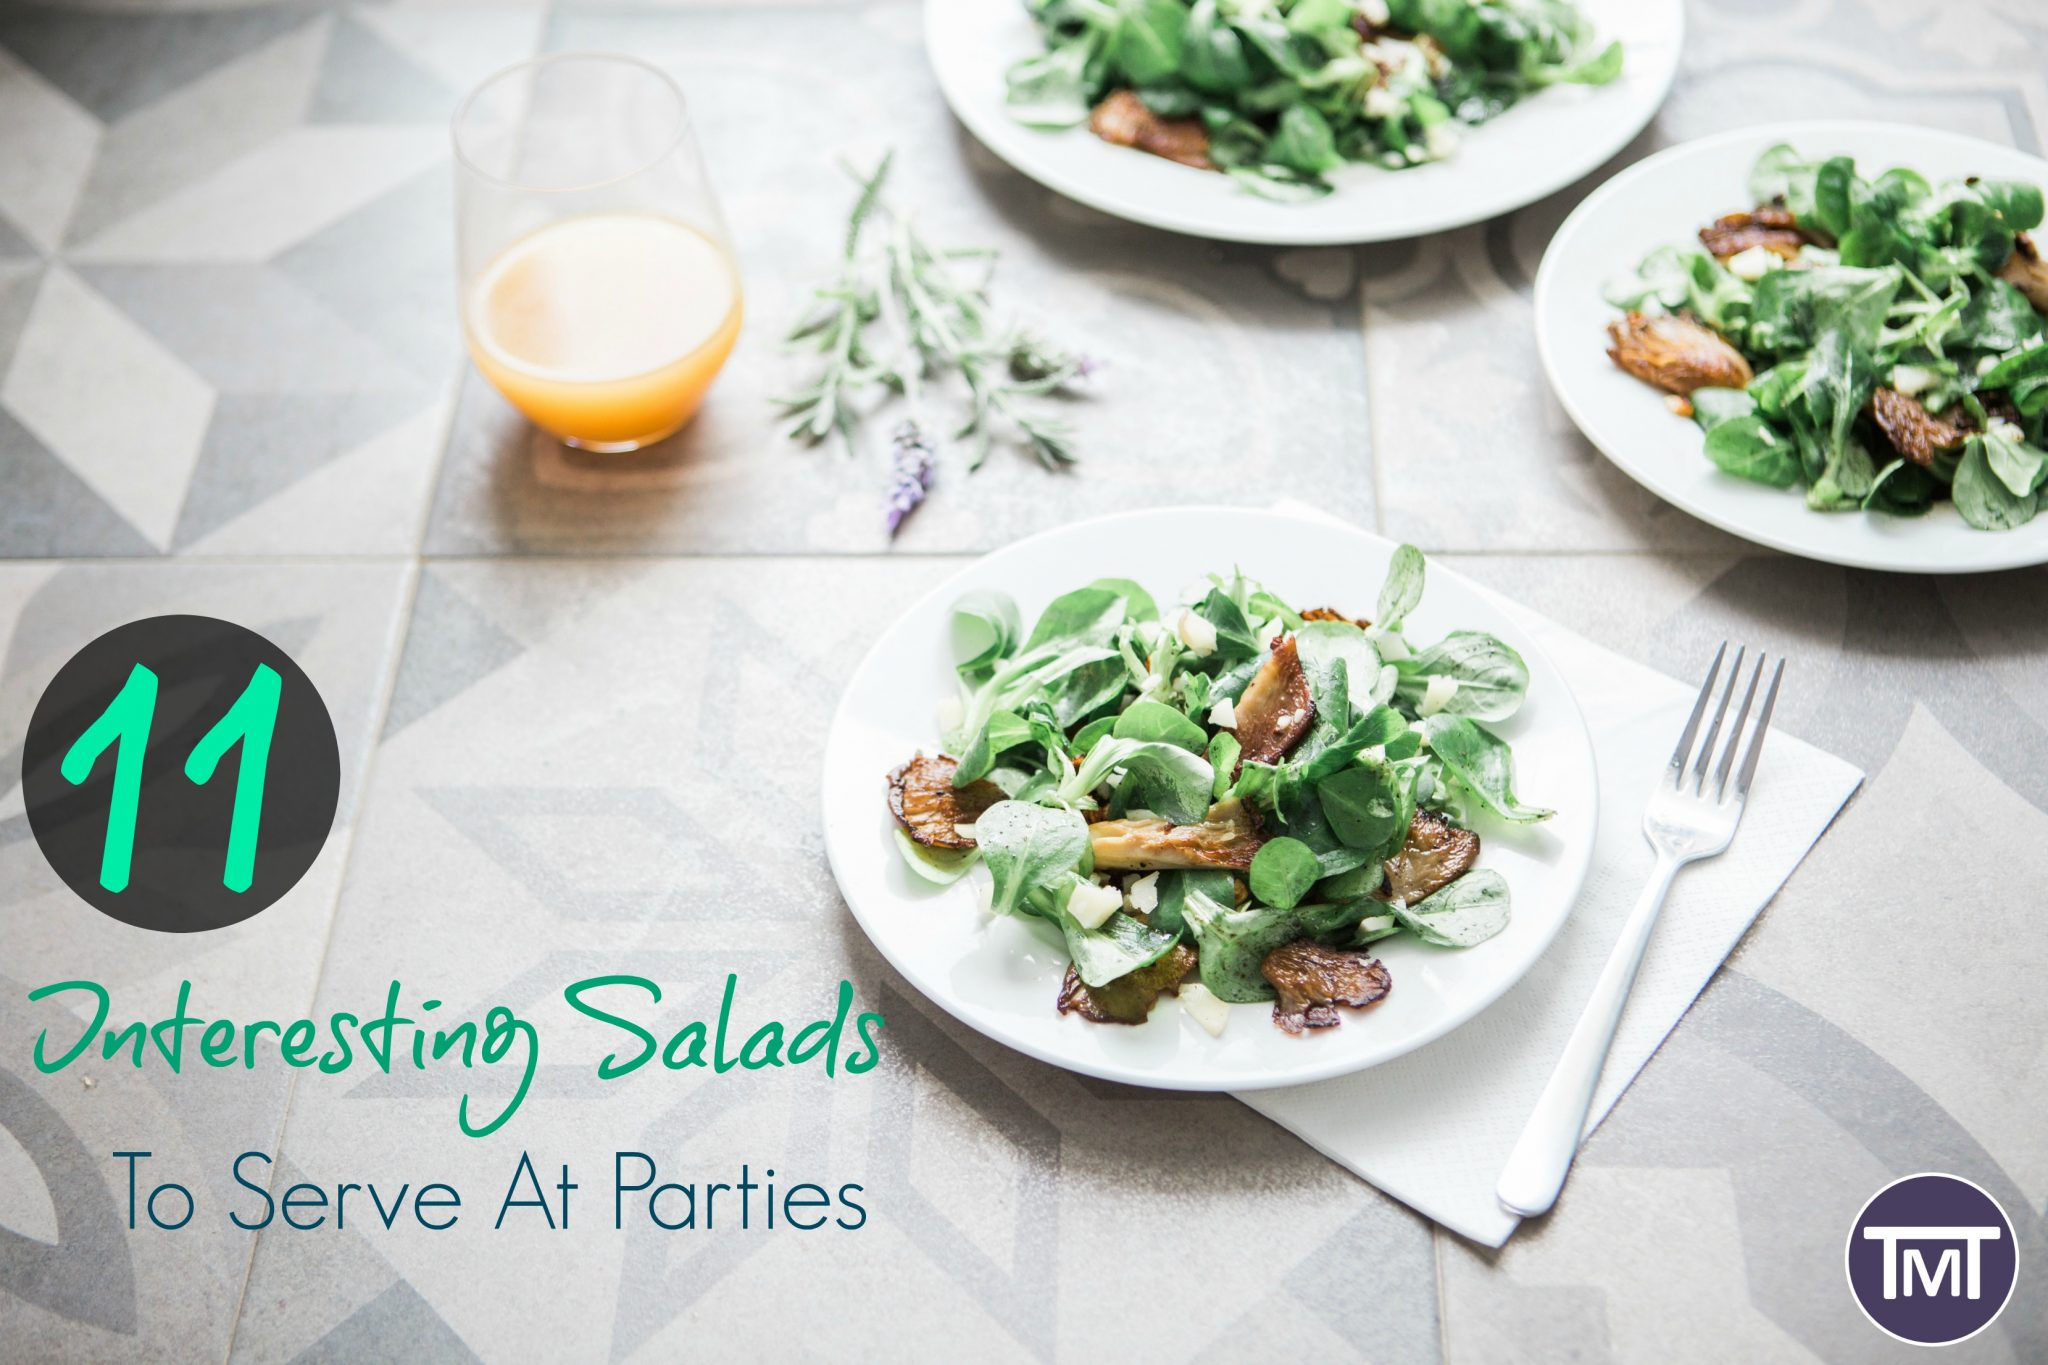 11 interesting salads to serve at parties feature image